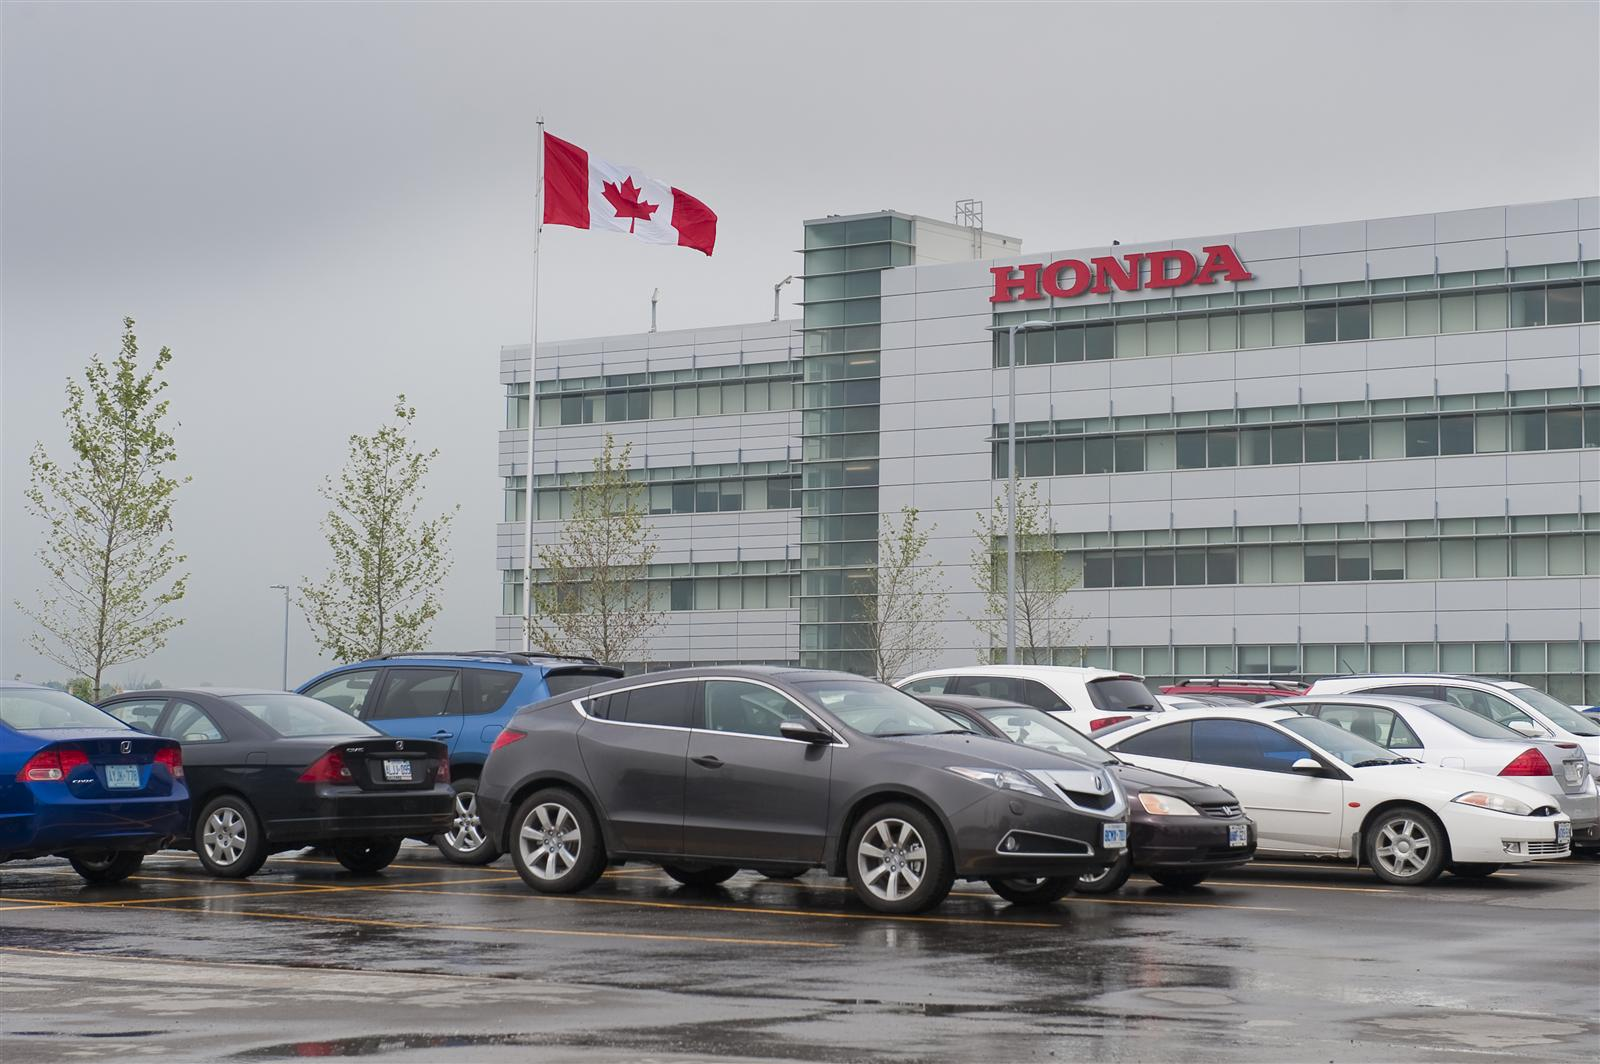 2422-honda-canada-corporate-headquarters-1916